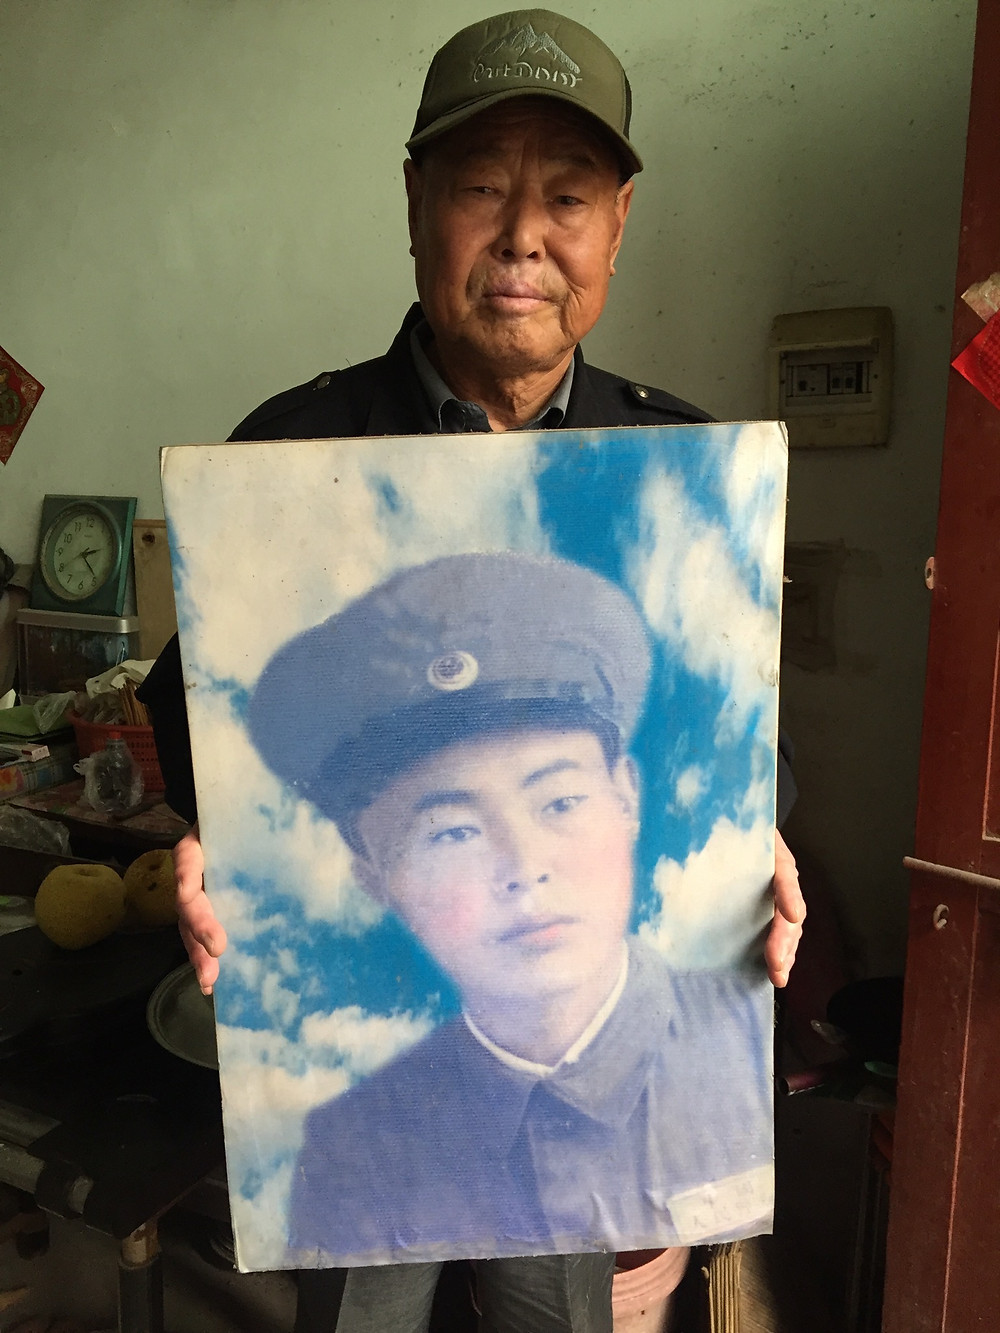 Xiao with a portrait of himself as a young soldier in the Chinese army in the 1950s. Photo by Simina Mistreanu/dpa